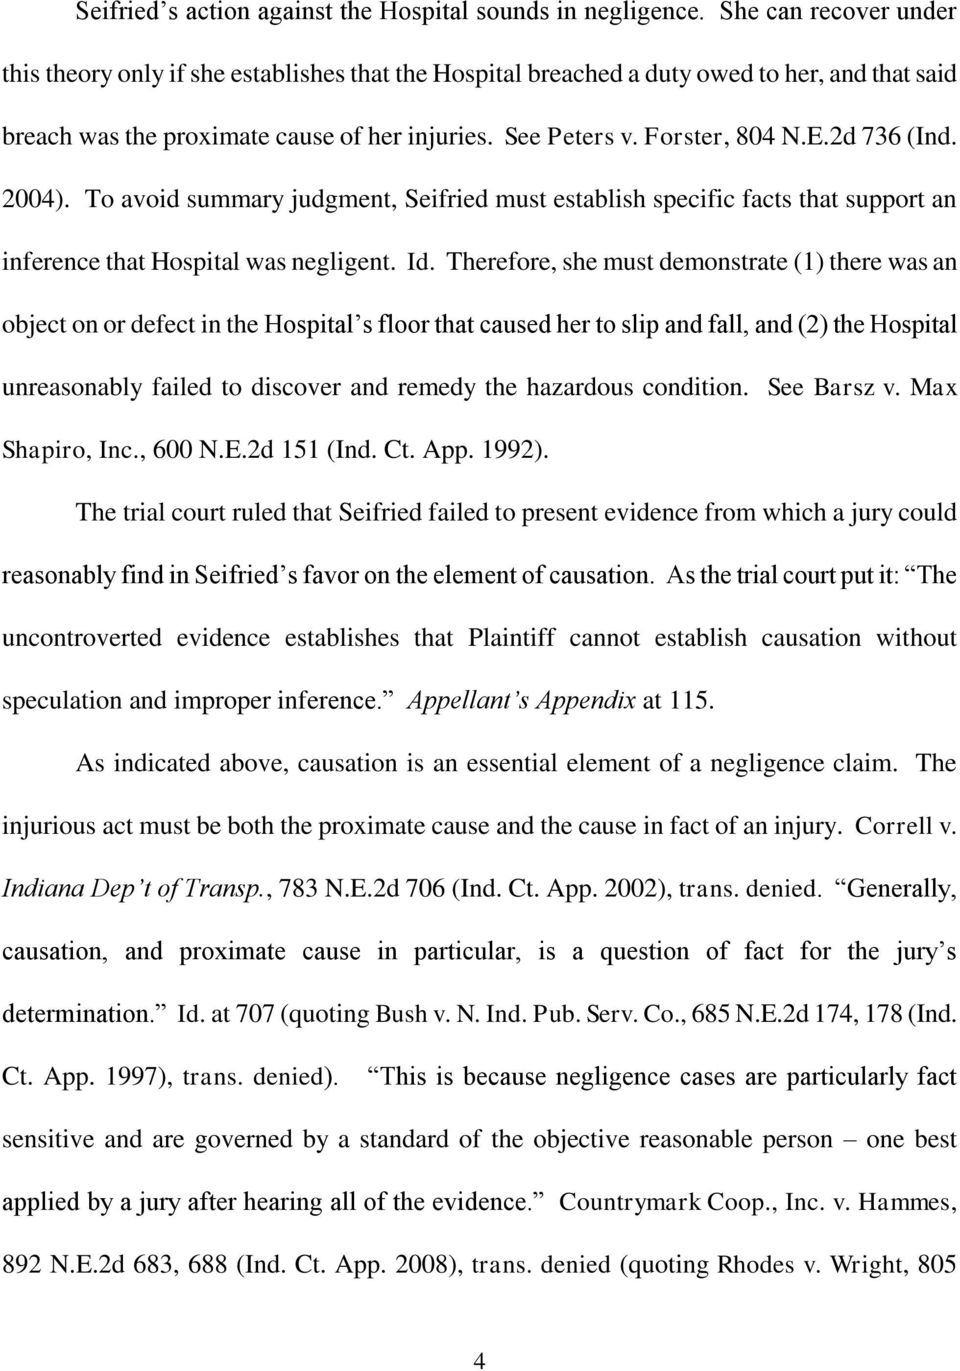 2d 736 (Ind. 2004. To avoid summary judgment, Seifried must establish specific facts that support an inference that Hospital was negligent. Id.